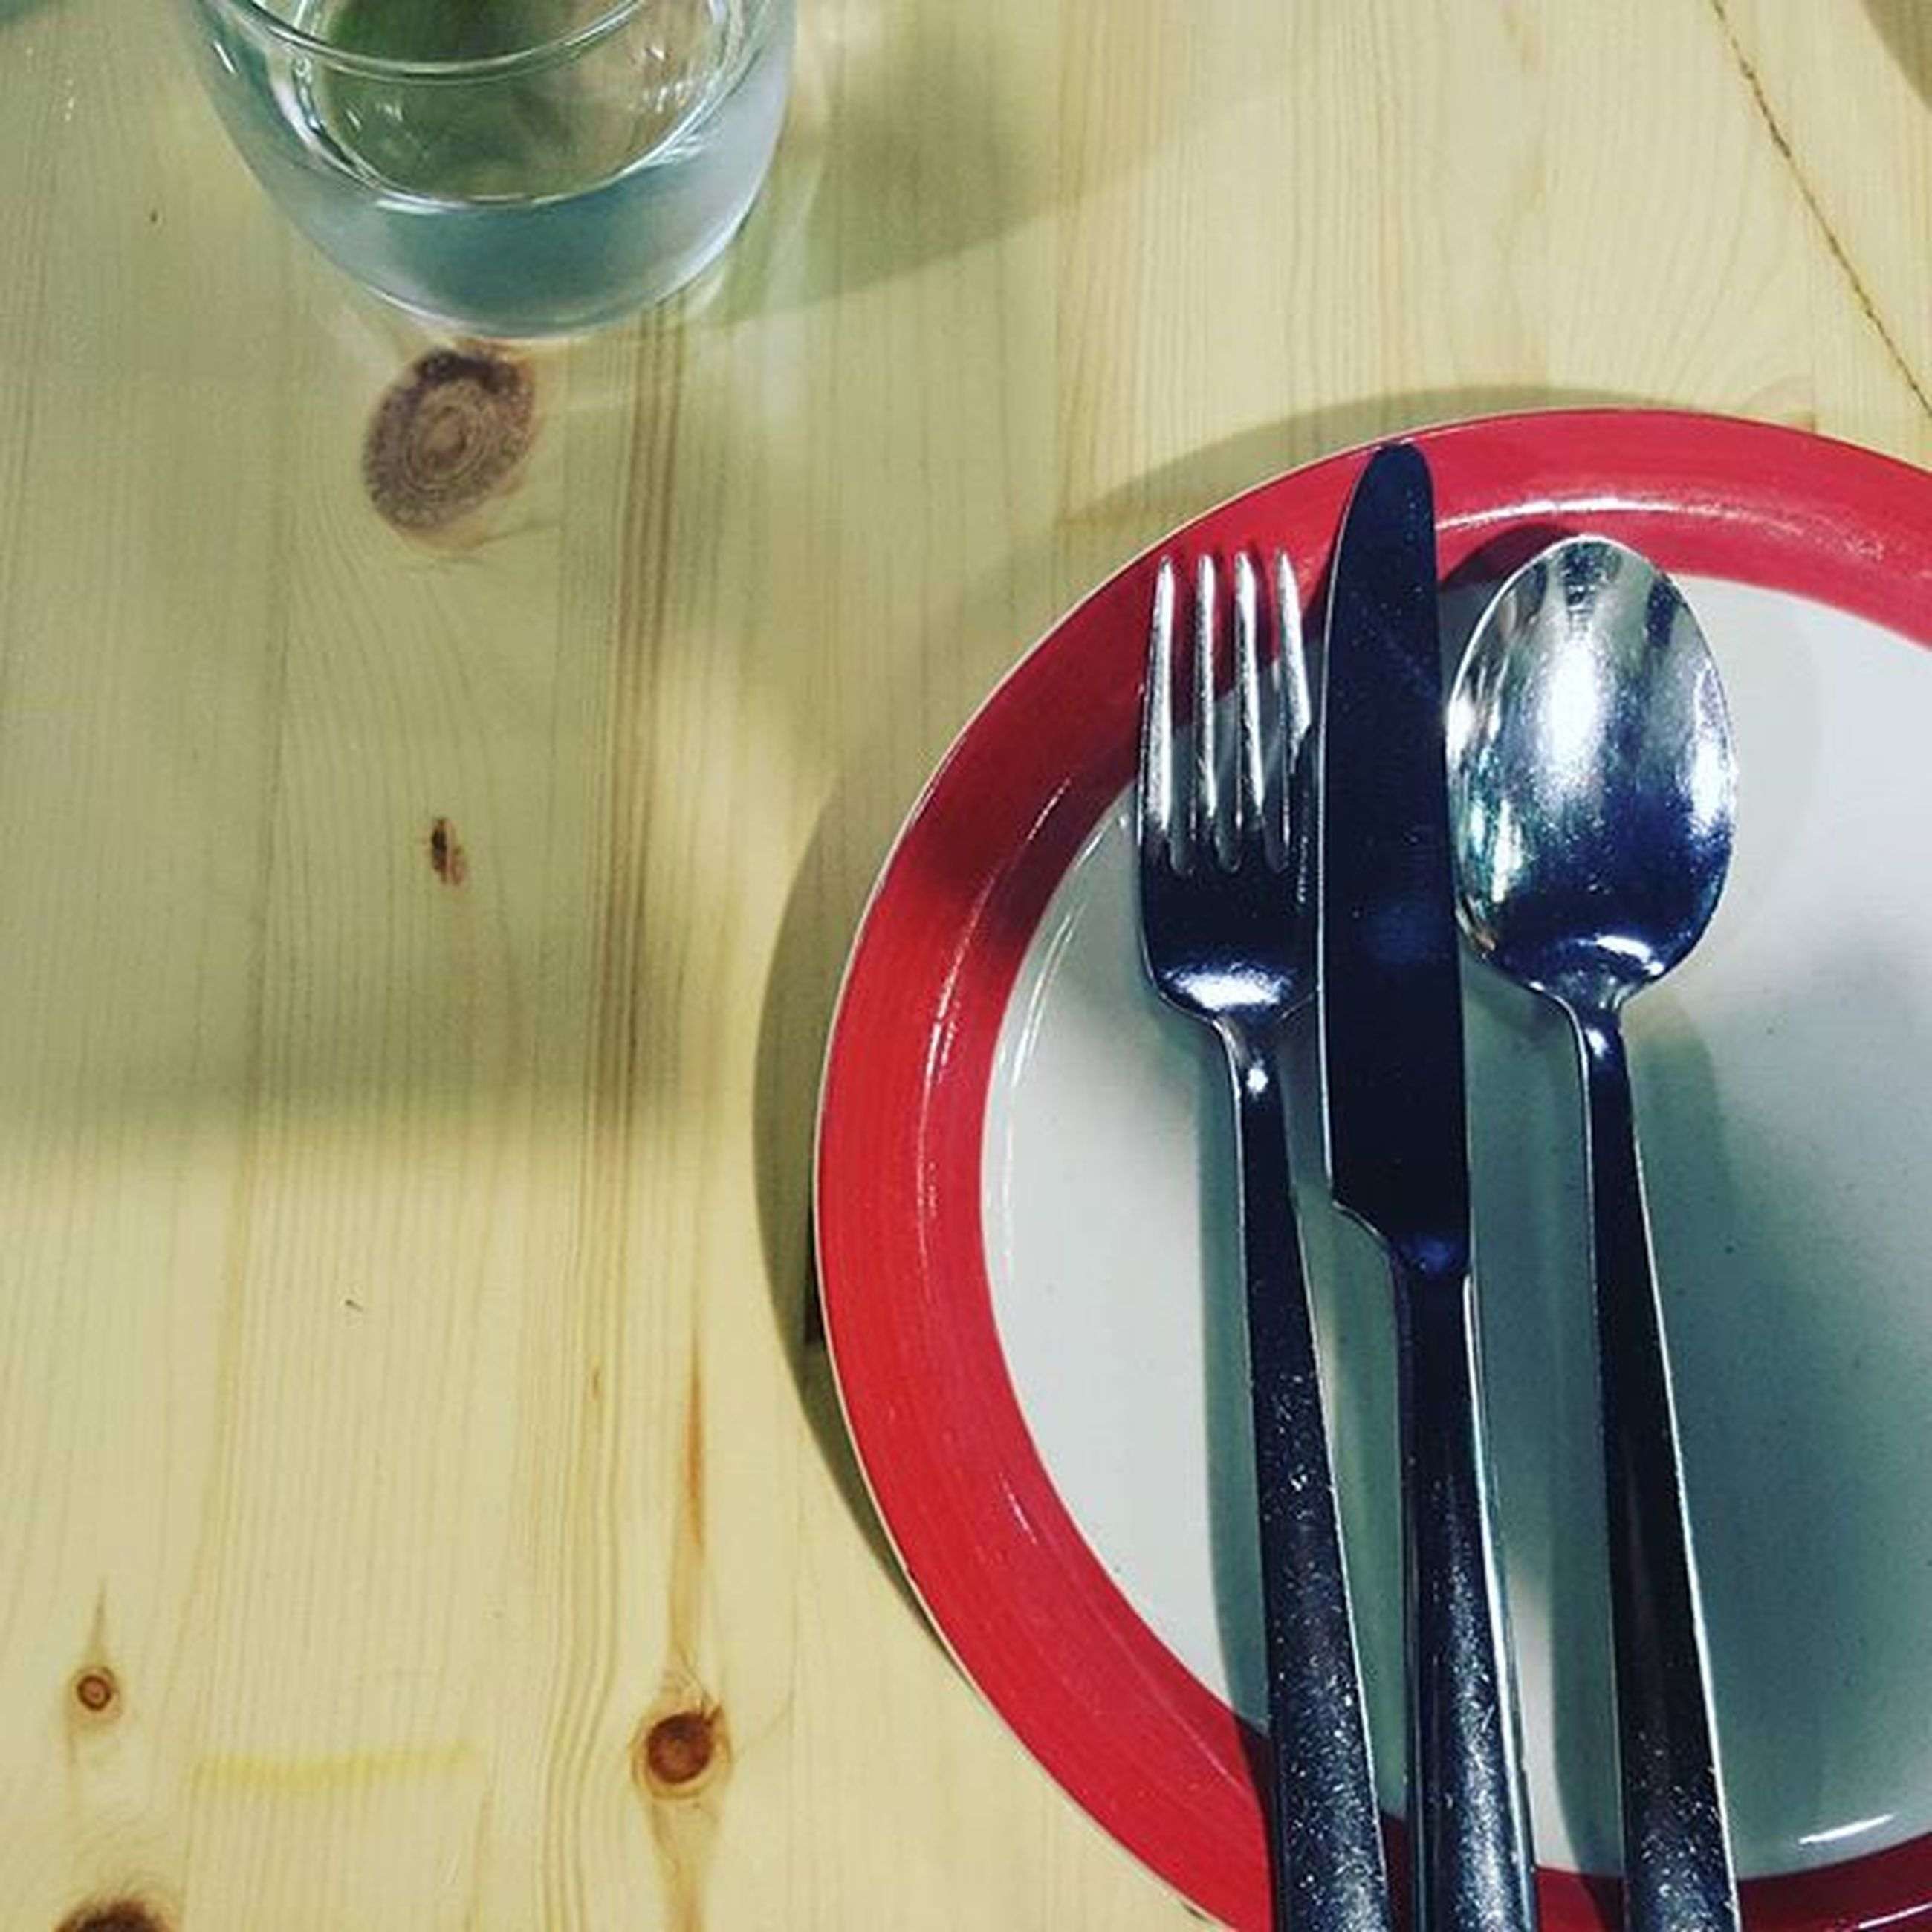 indoors, table, still life, food and drink, fork, spoon, high angle view, close-up, drinking glass, drink, food, plate, freshness, wood - material, directly above, red, no people, table knife, refreshment, glass - material